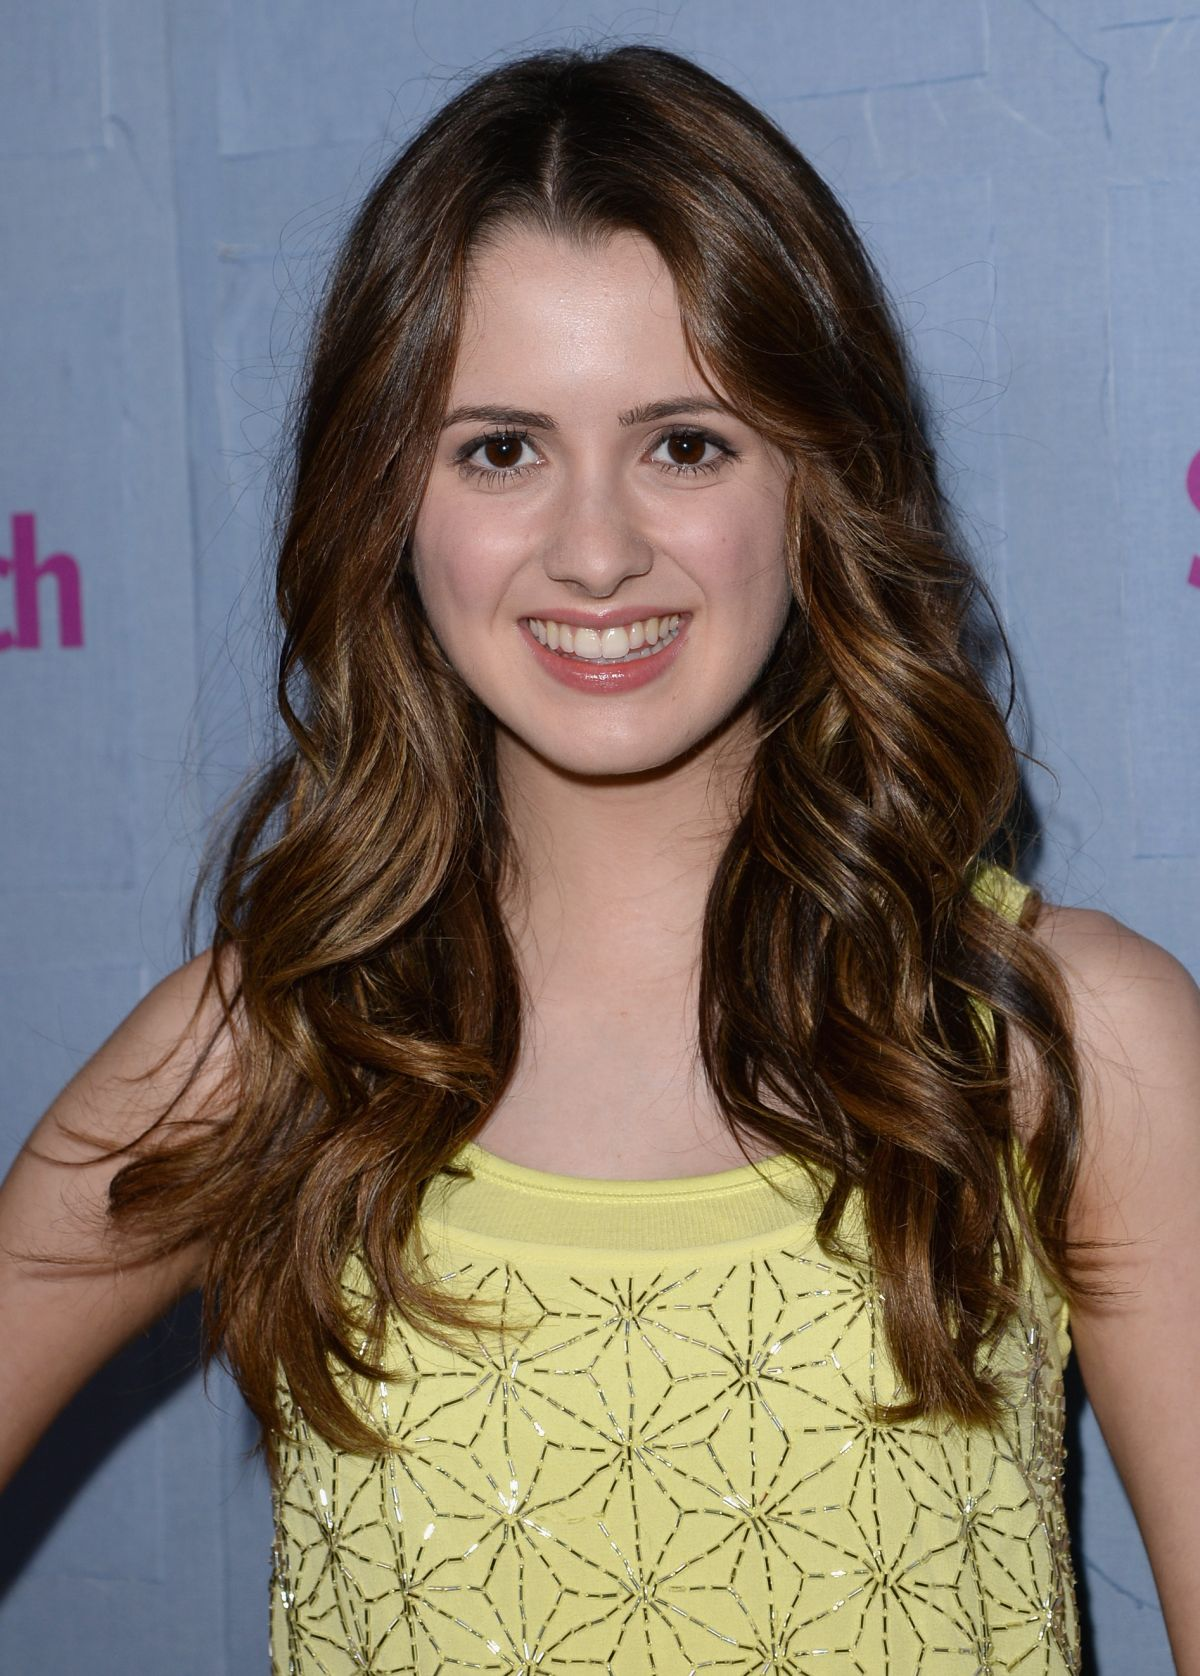 The 21-year old daughter of father Damiano Marano  and mother Ellen Marano, 157 cm tall Laura Marano in 2017 photo